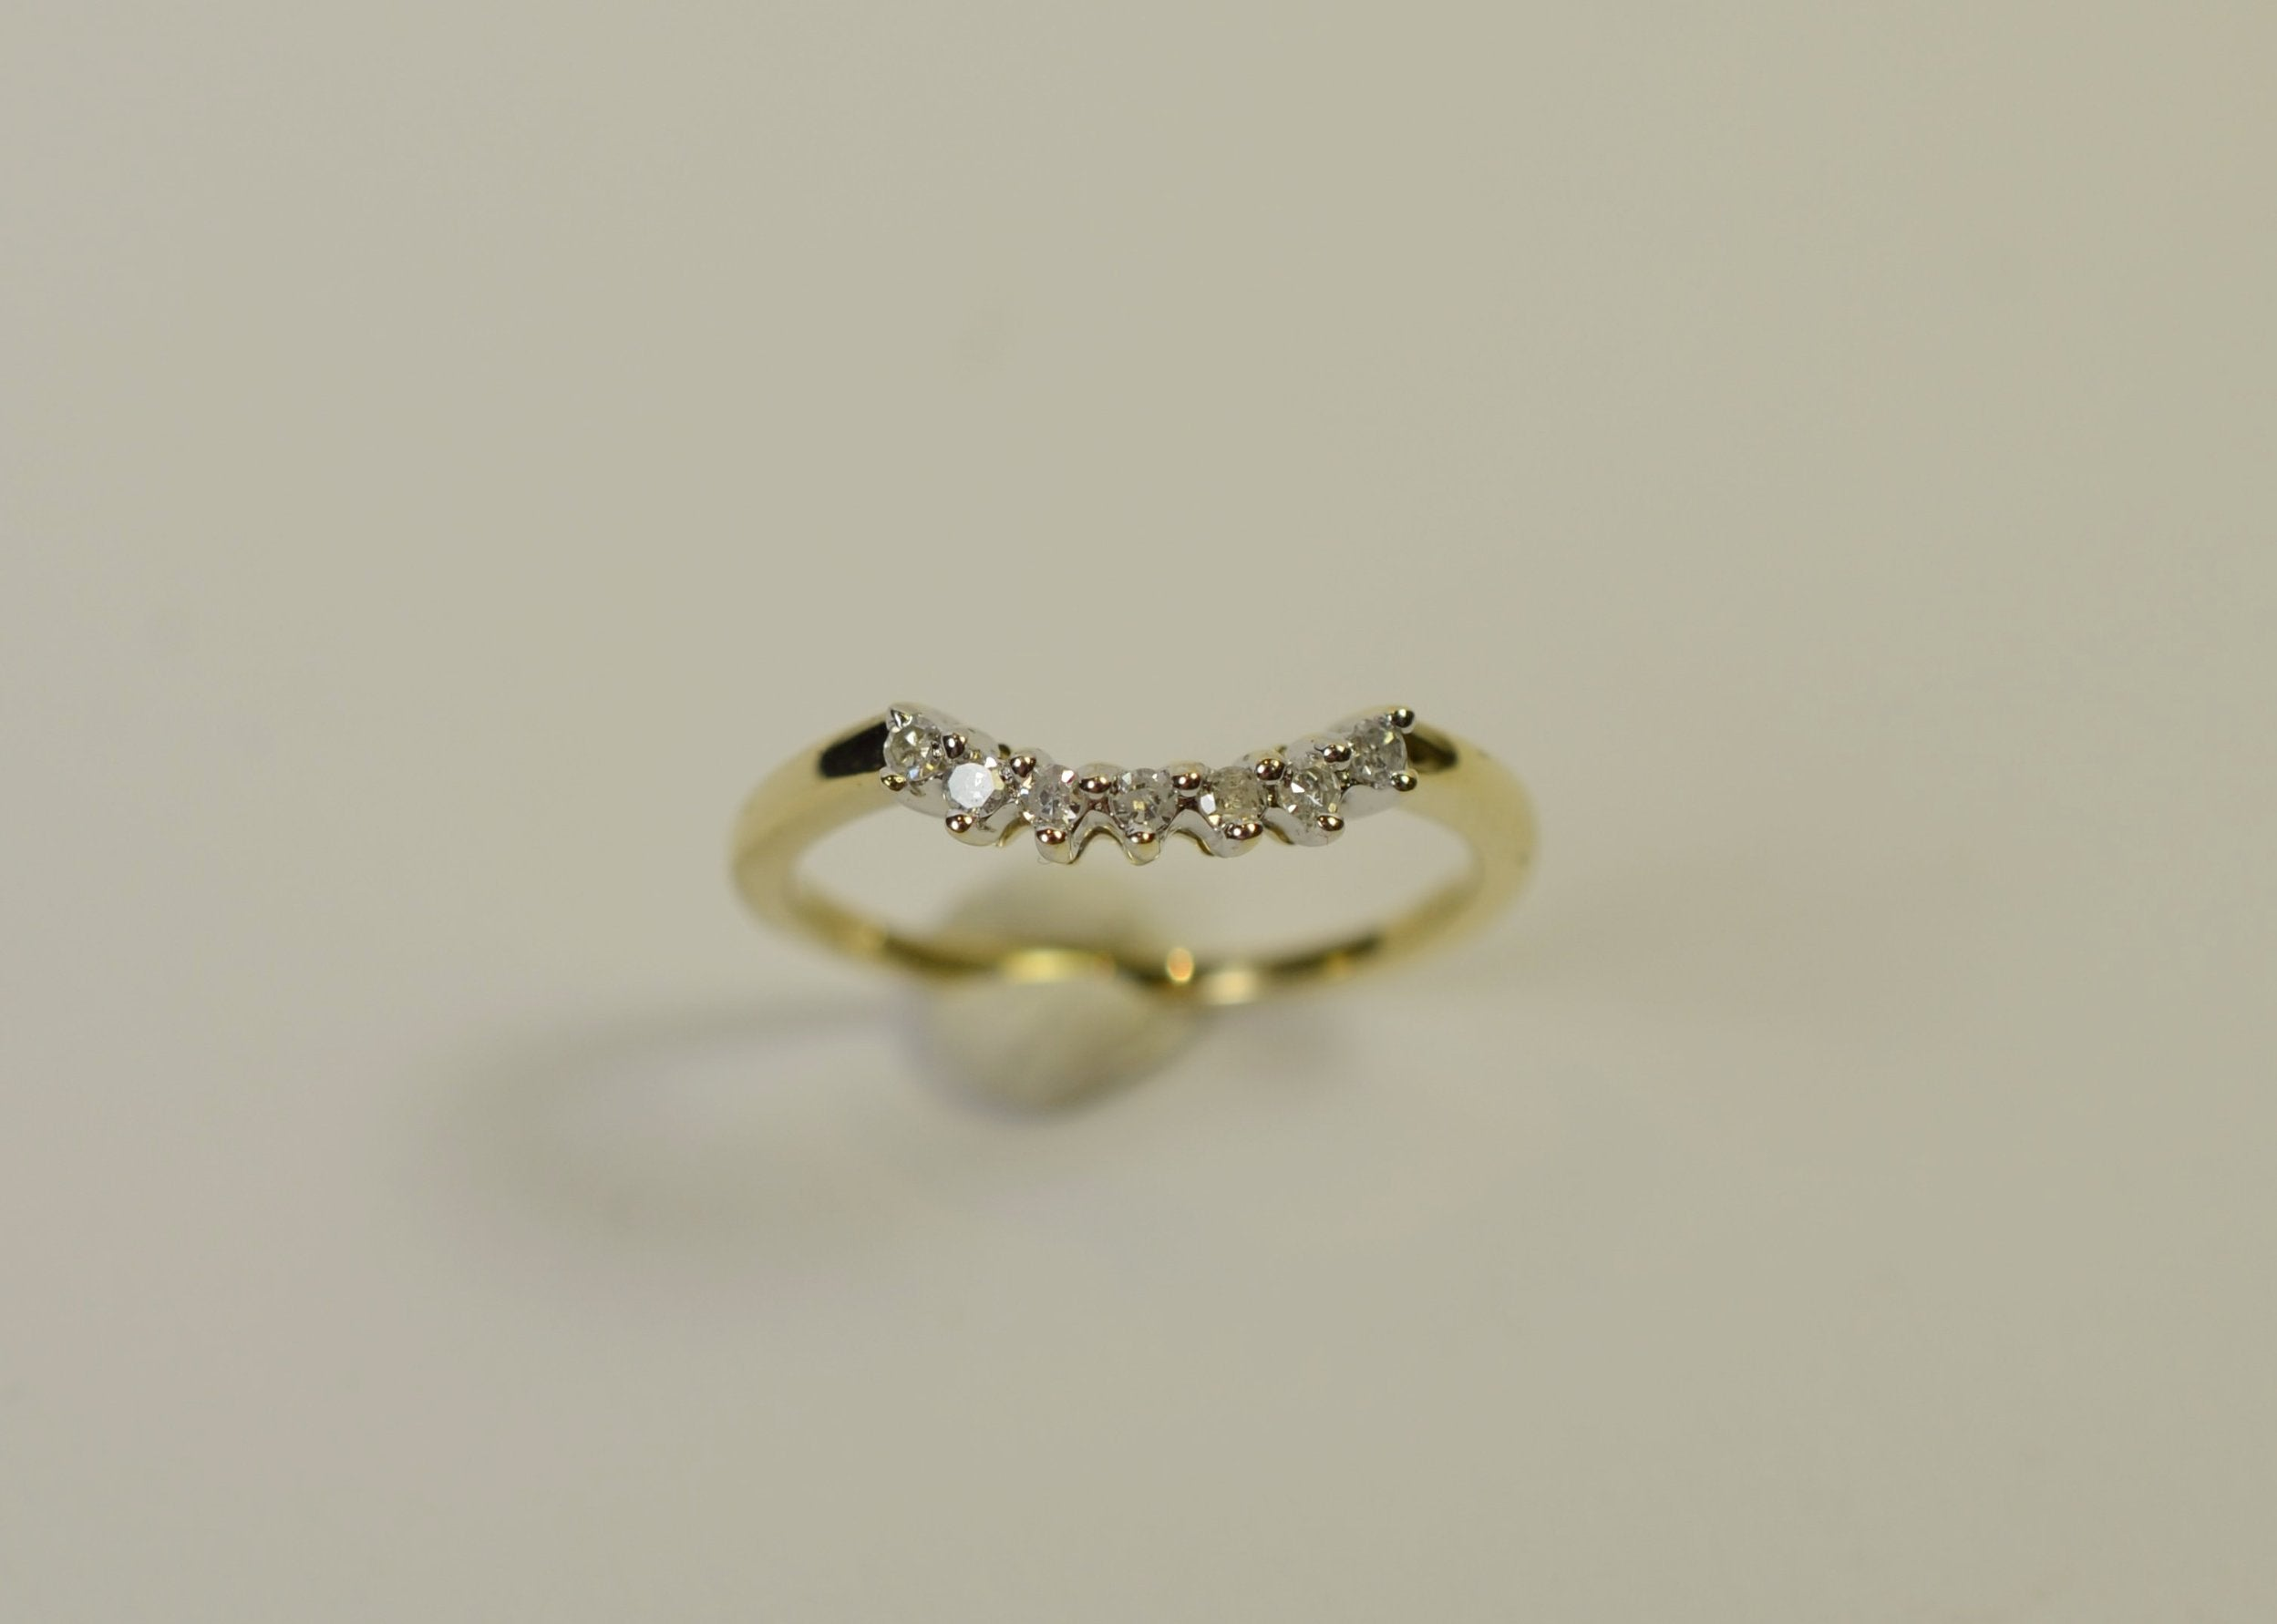 rose style in prongs cut wedding eternity band rounded product gold with brilliant diamond half